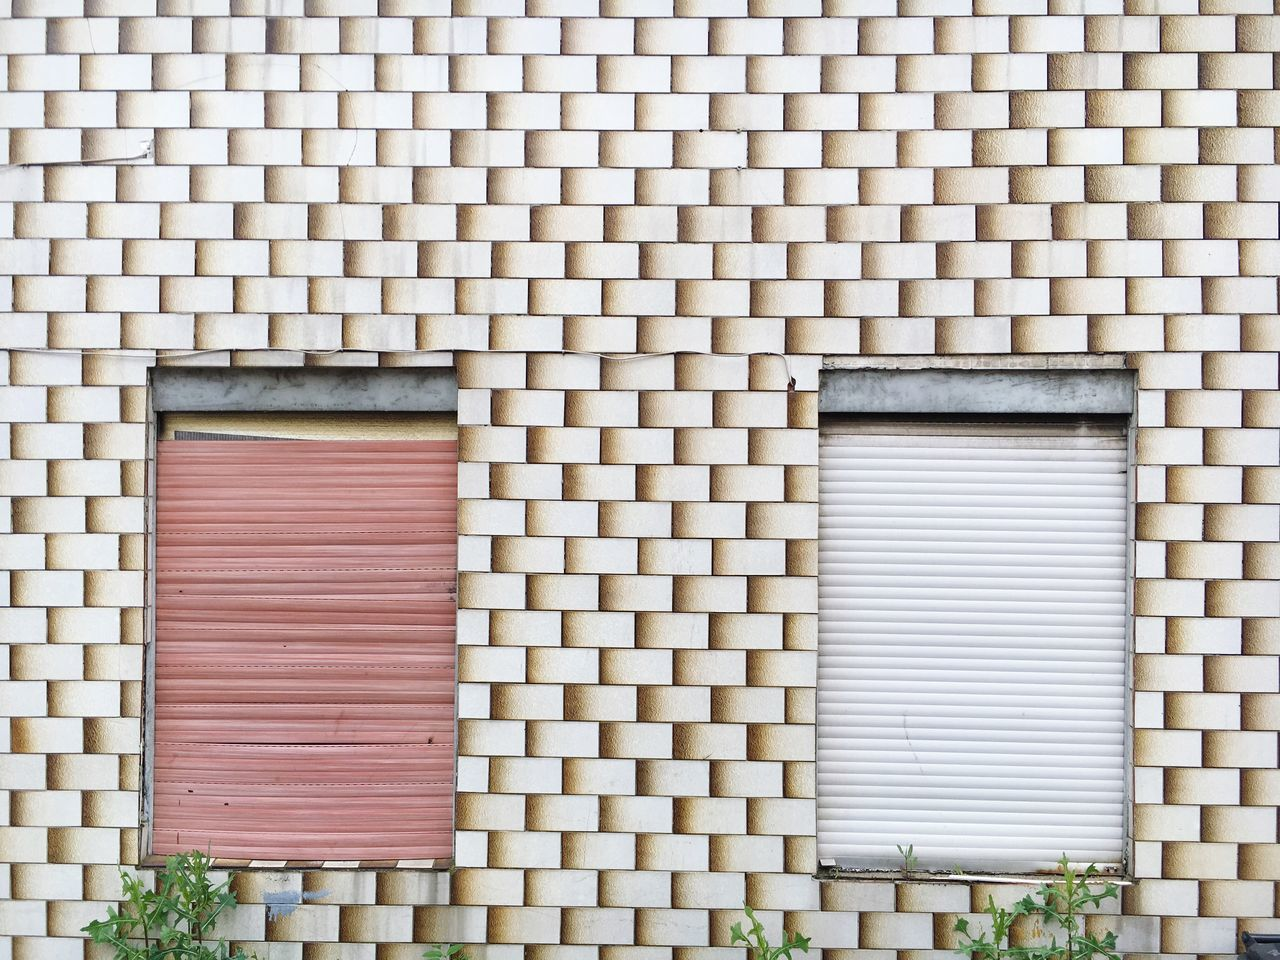 Closed Window Shutters On Patterned Wall